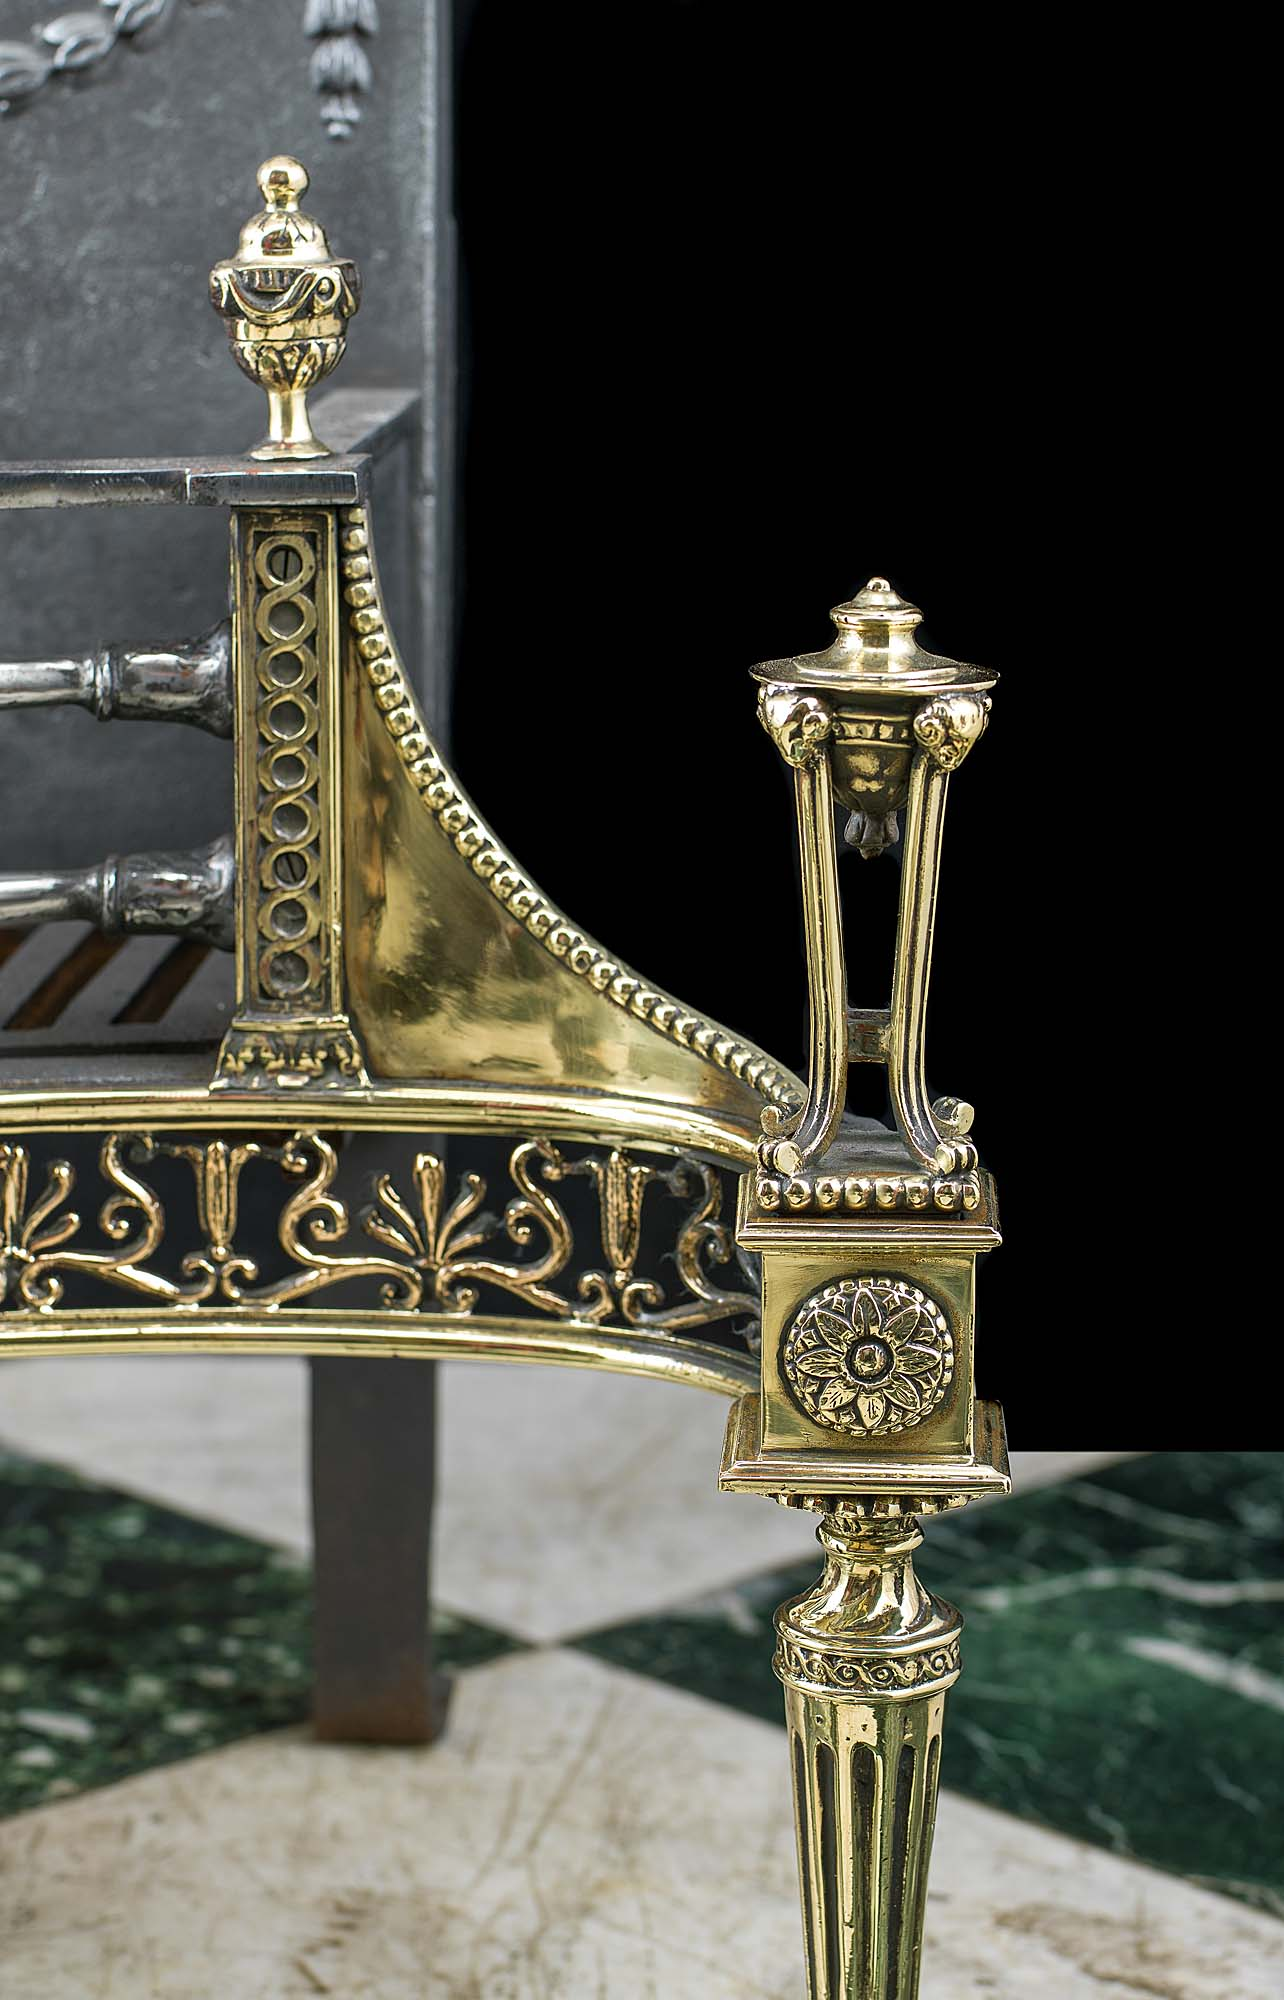 An ornate Regency style cast iron and brass antique fire grate